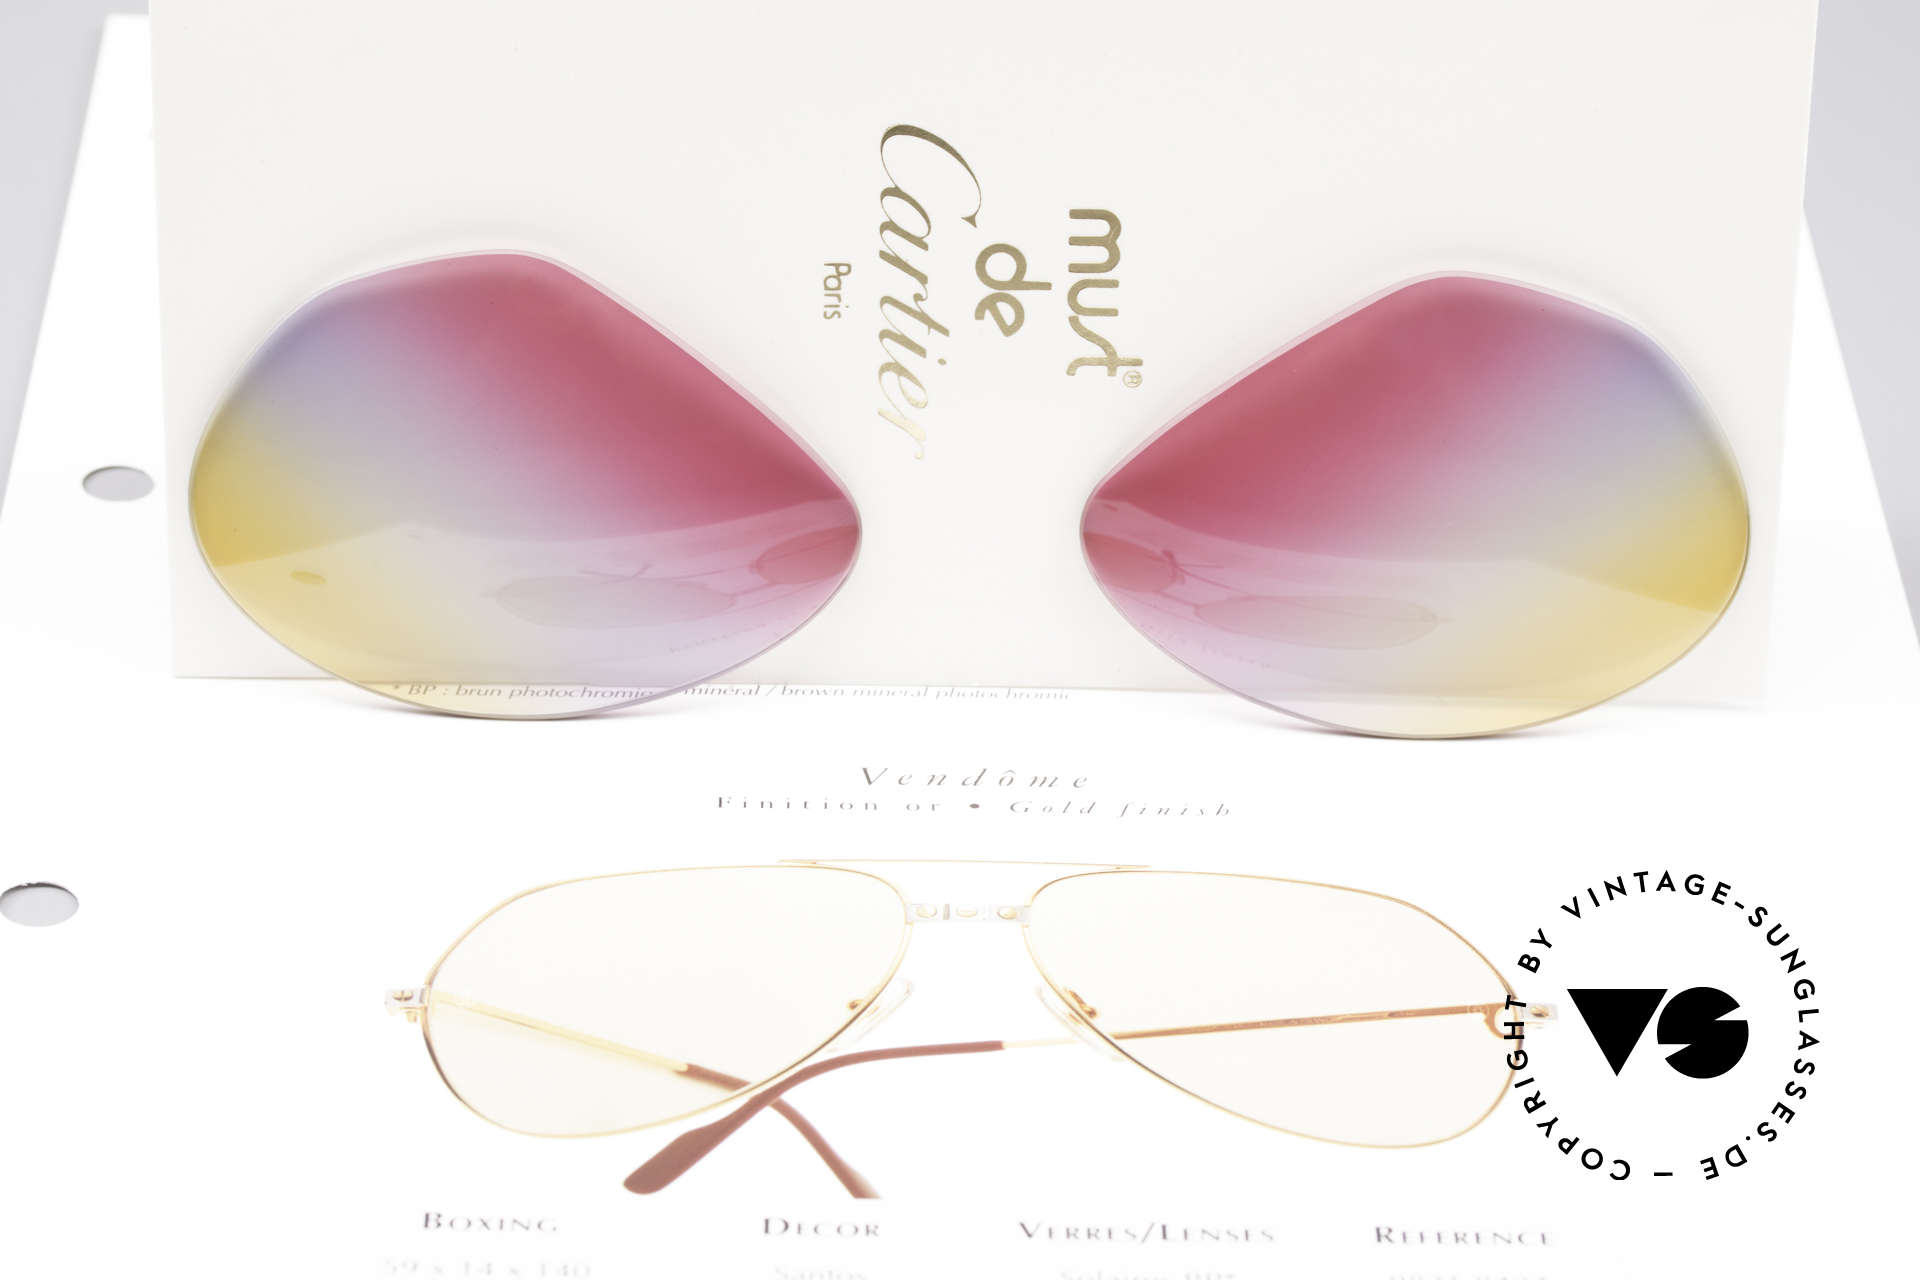 Cartier Vendome Lenses - L Tricolored Sunrise Lenses, TRICOLOR gradient: the triple tint looks like a sunrise, Made for Men and Women